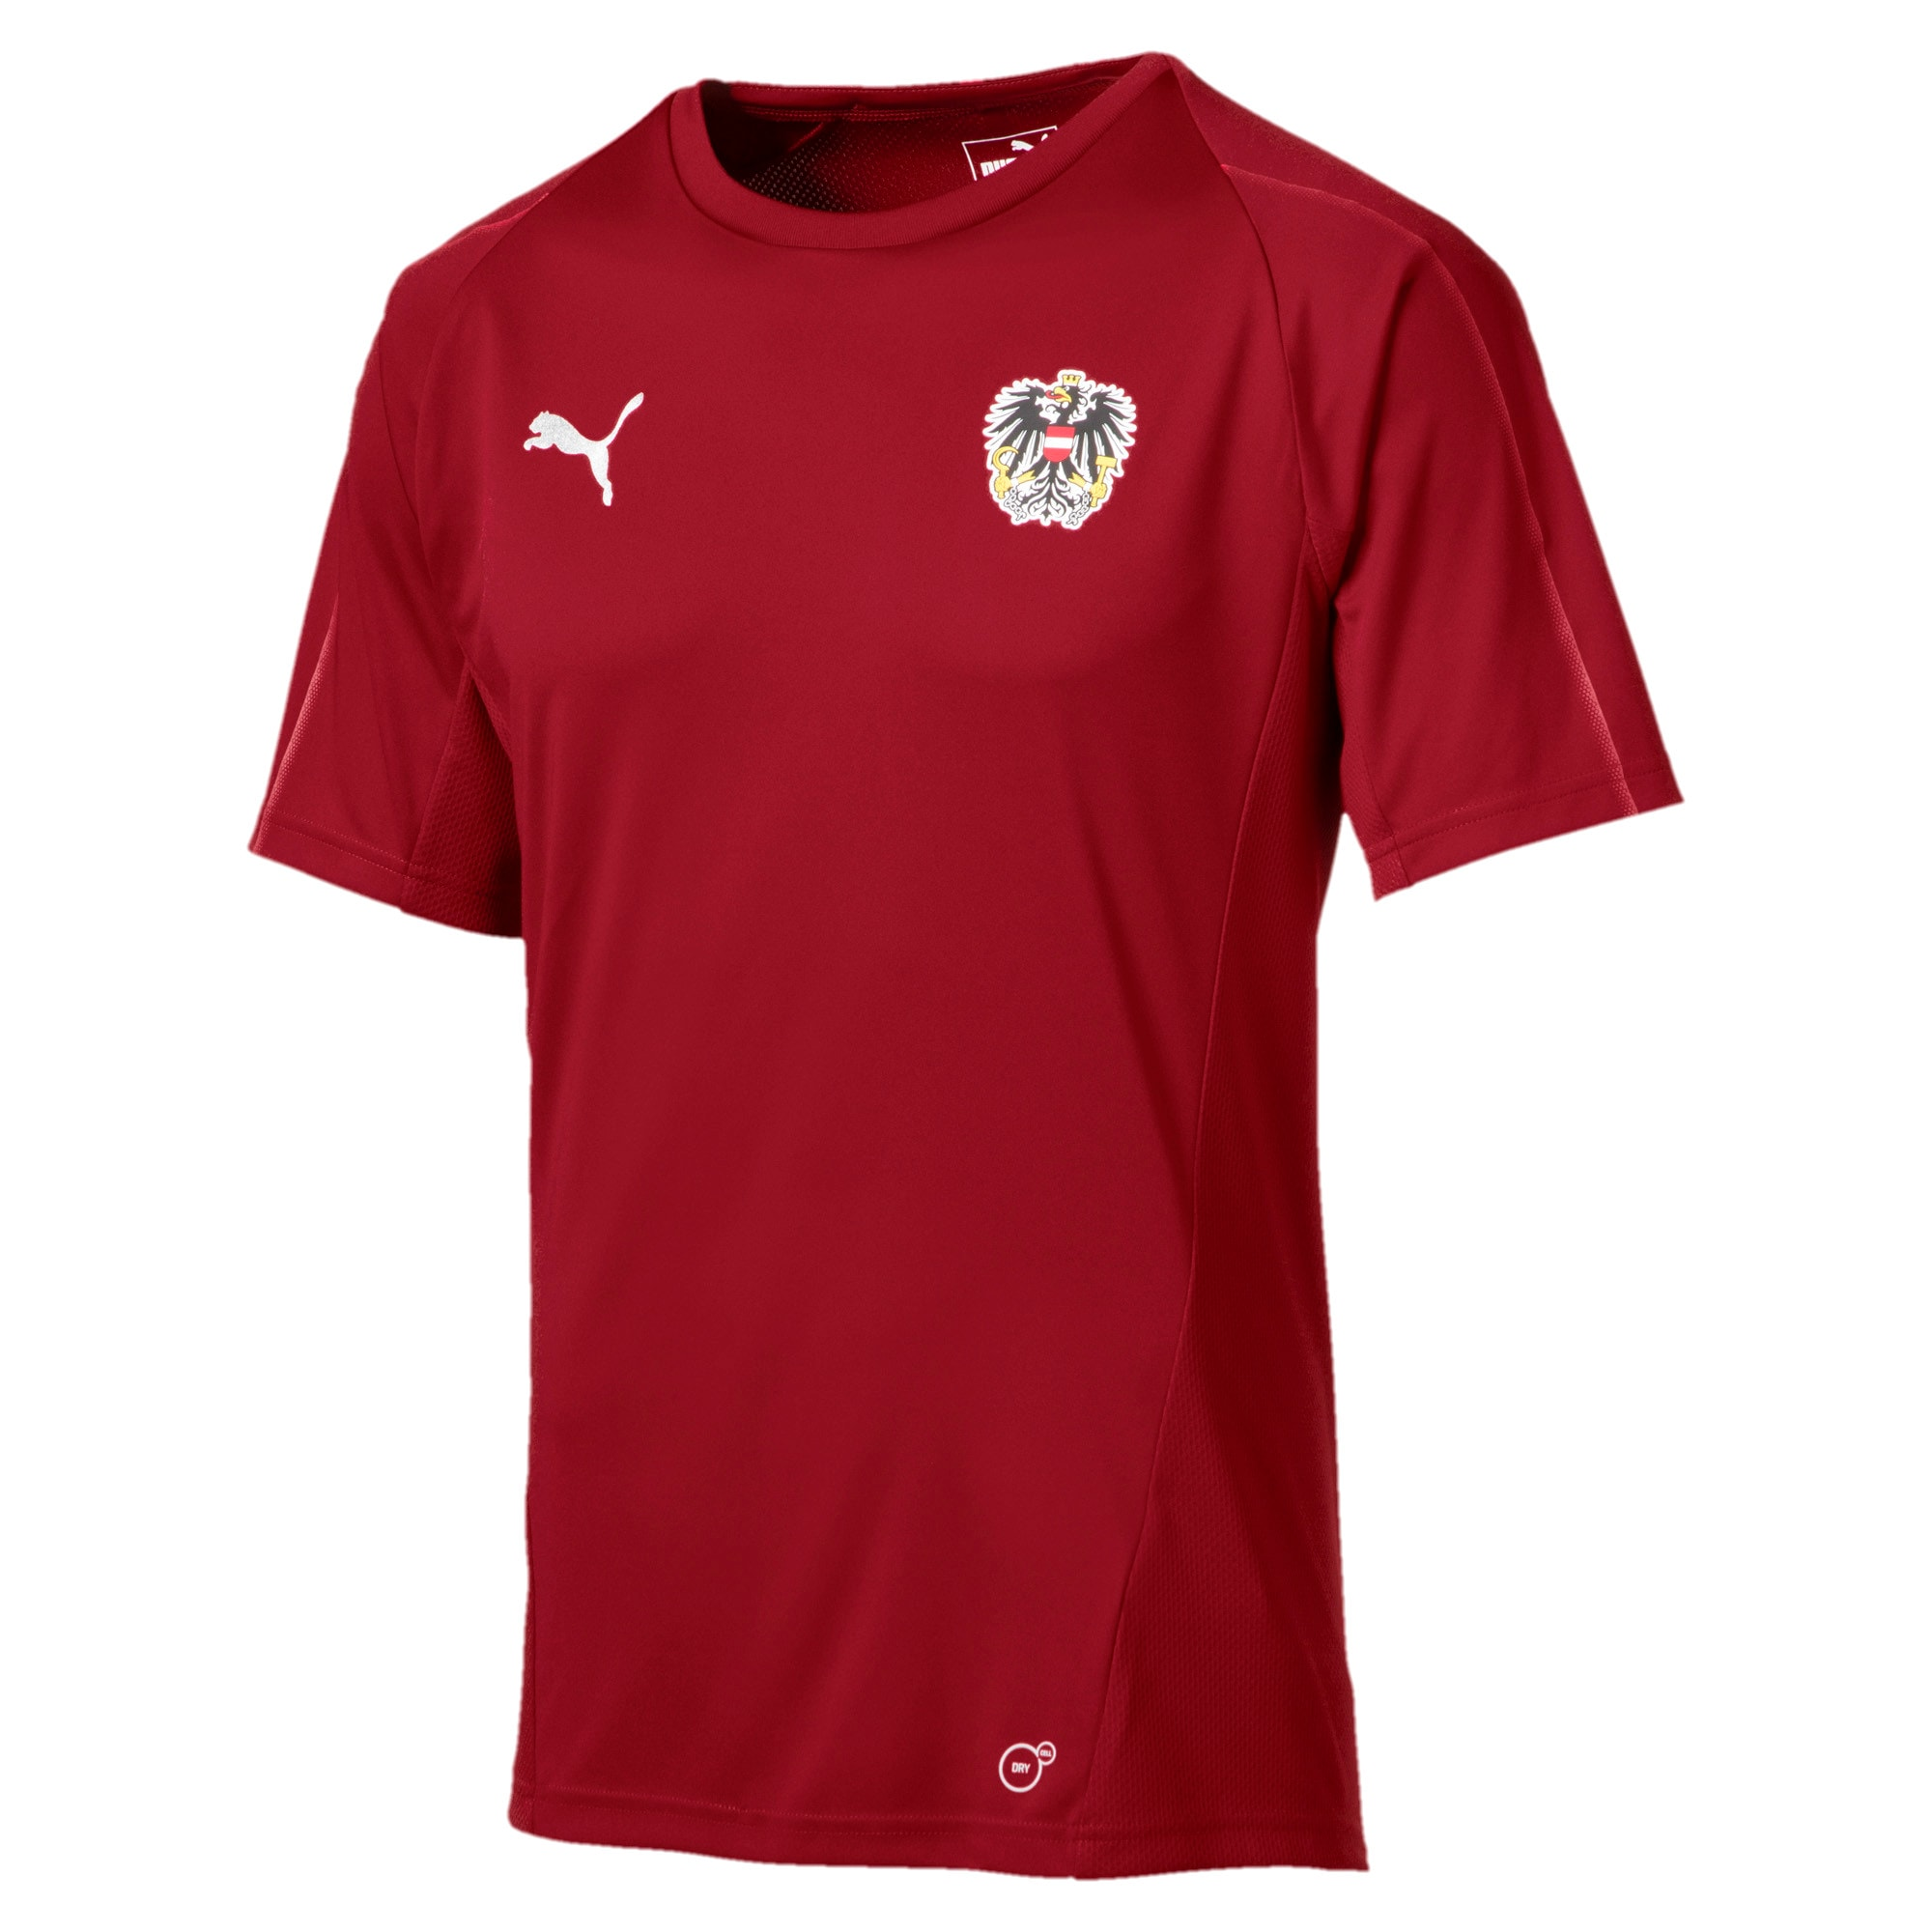 Thumbnail 1 of Austria Training Jersey, Red Dahlia, medium